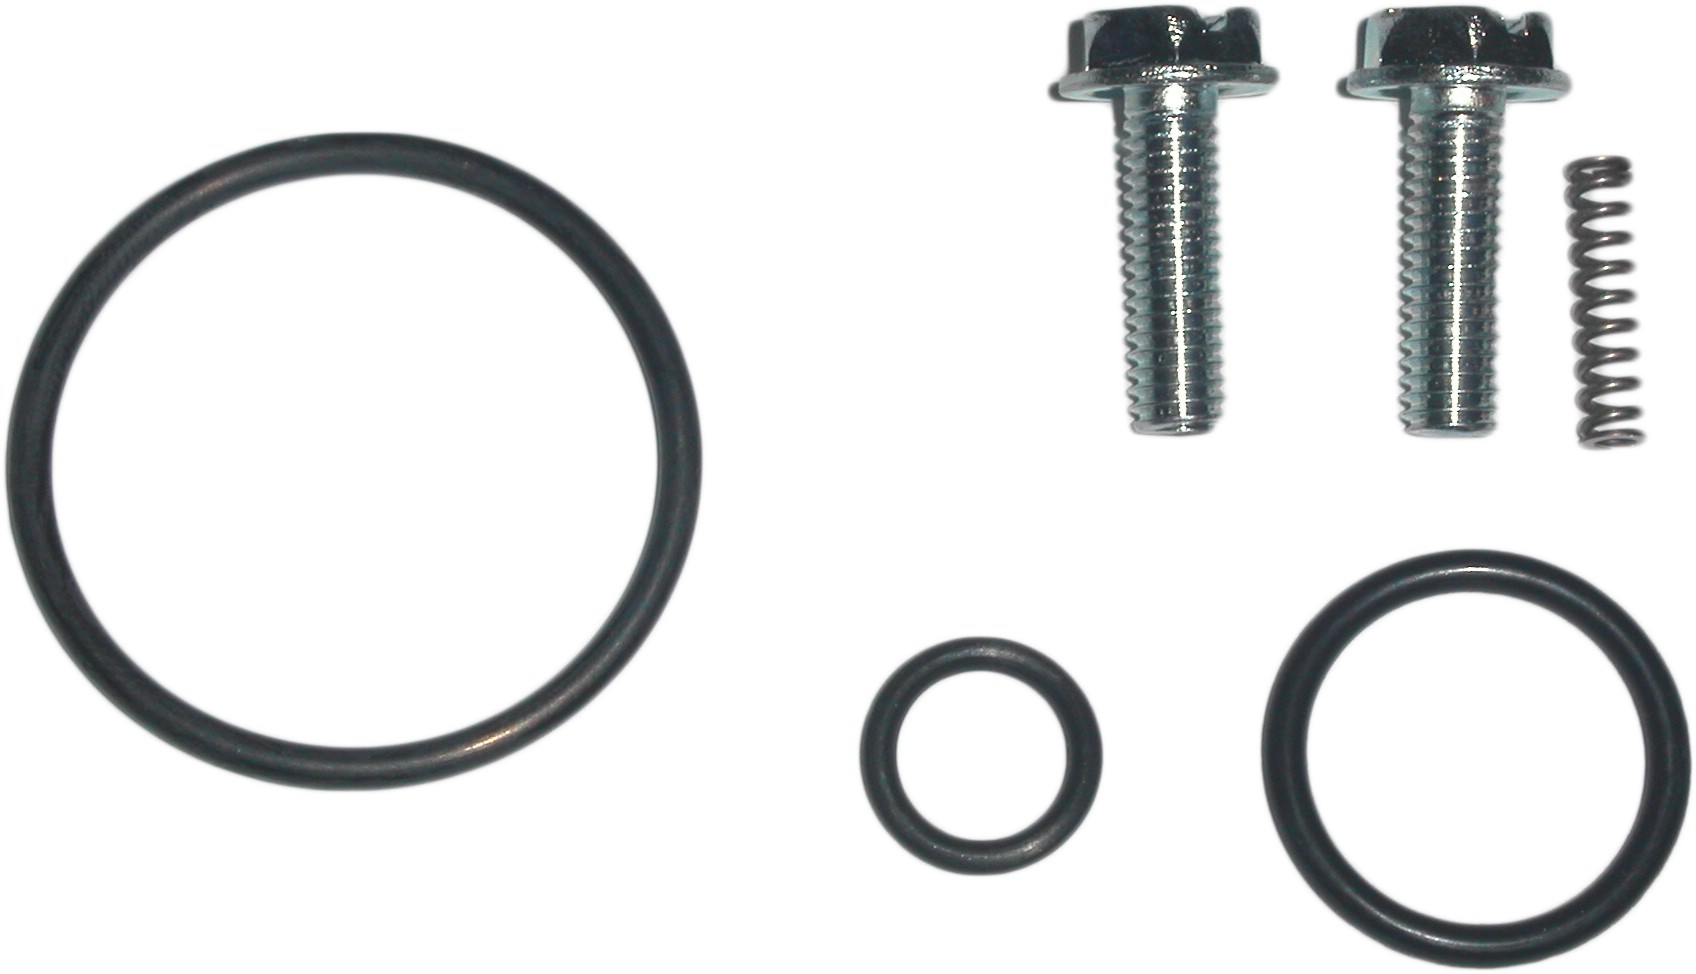 Suzuki GN 250 (UK) 1985-1995 Fuel Tap Repair Kit (Each